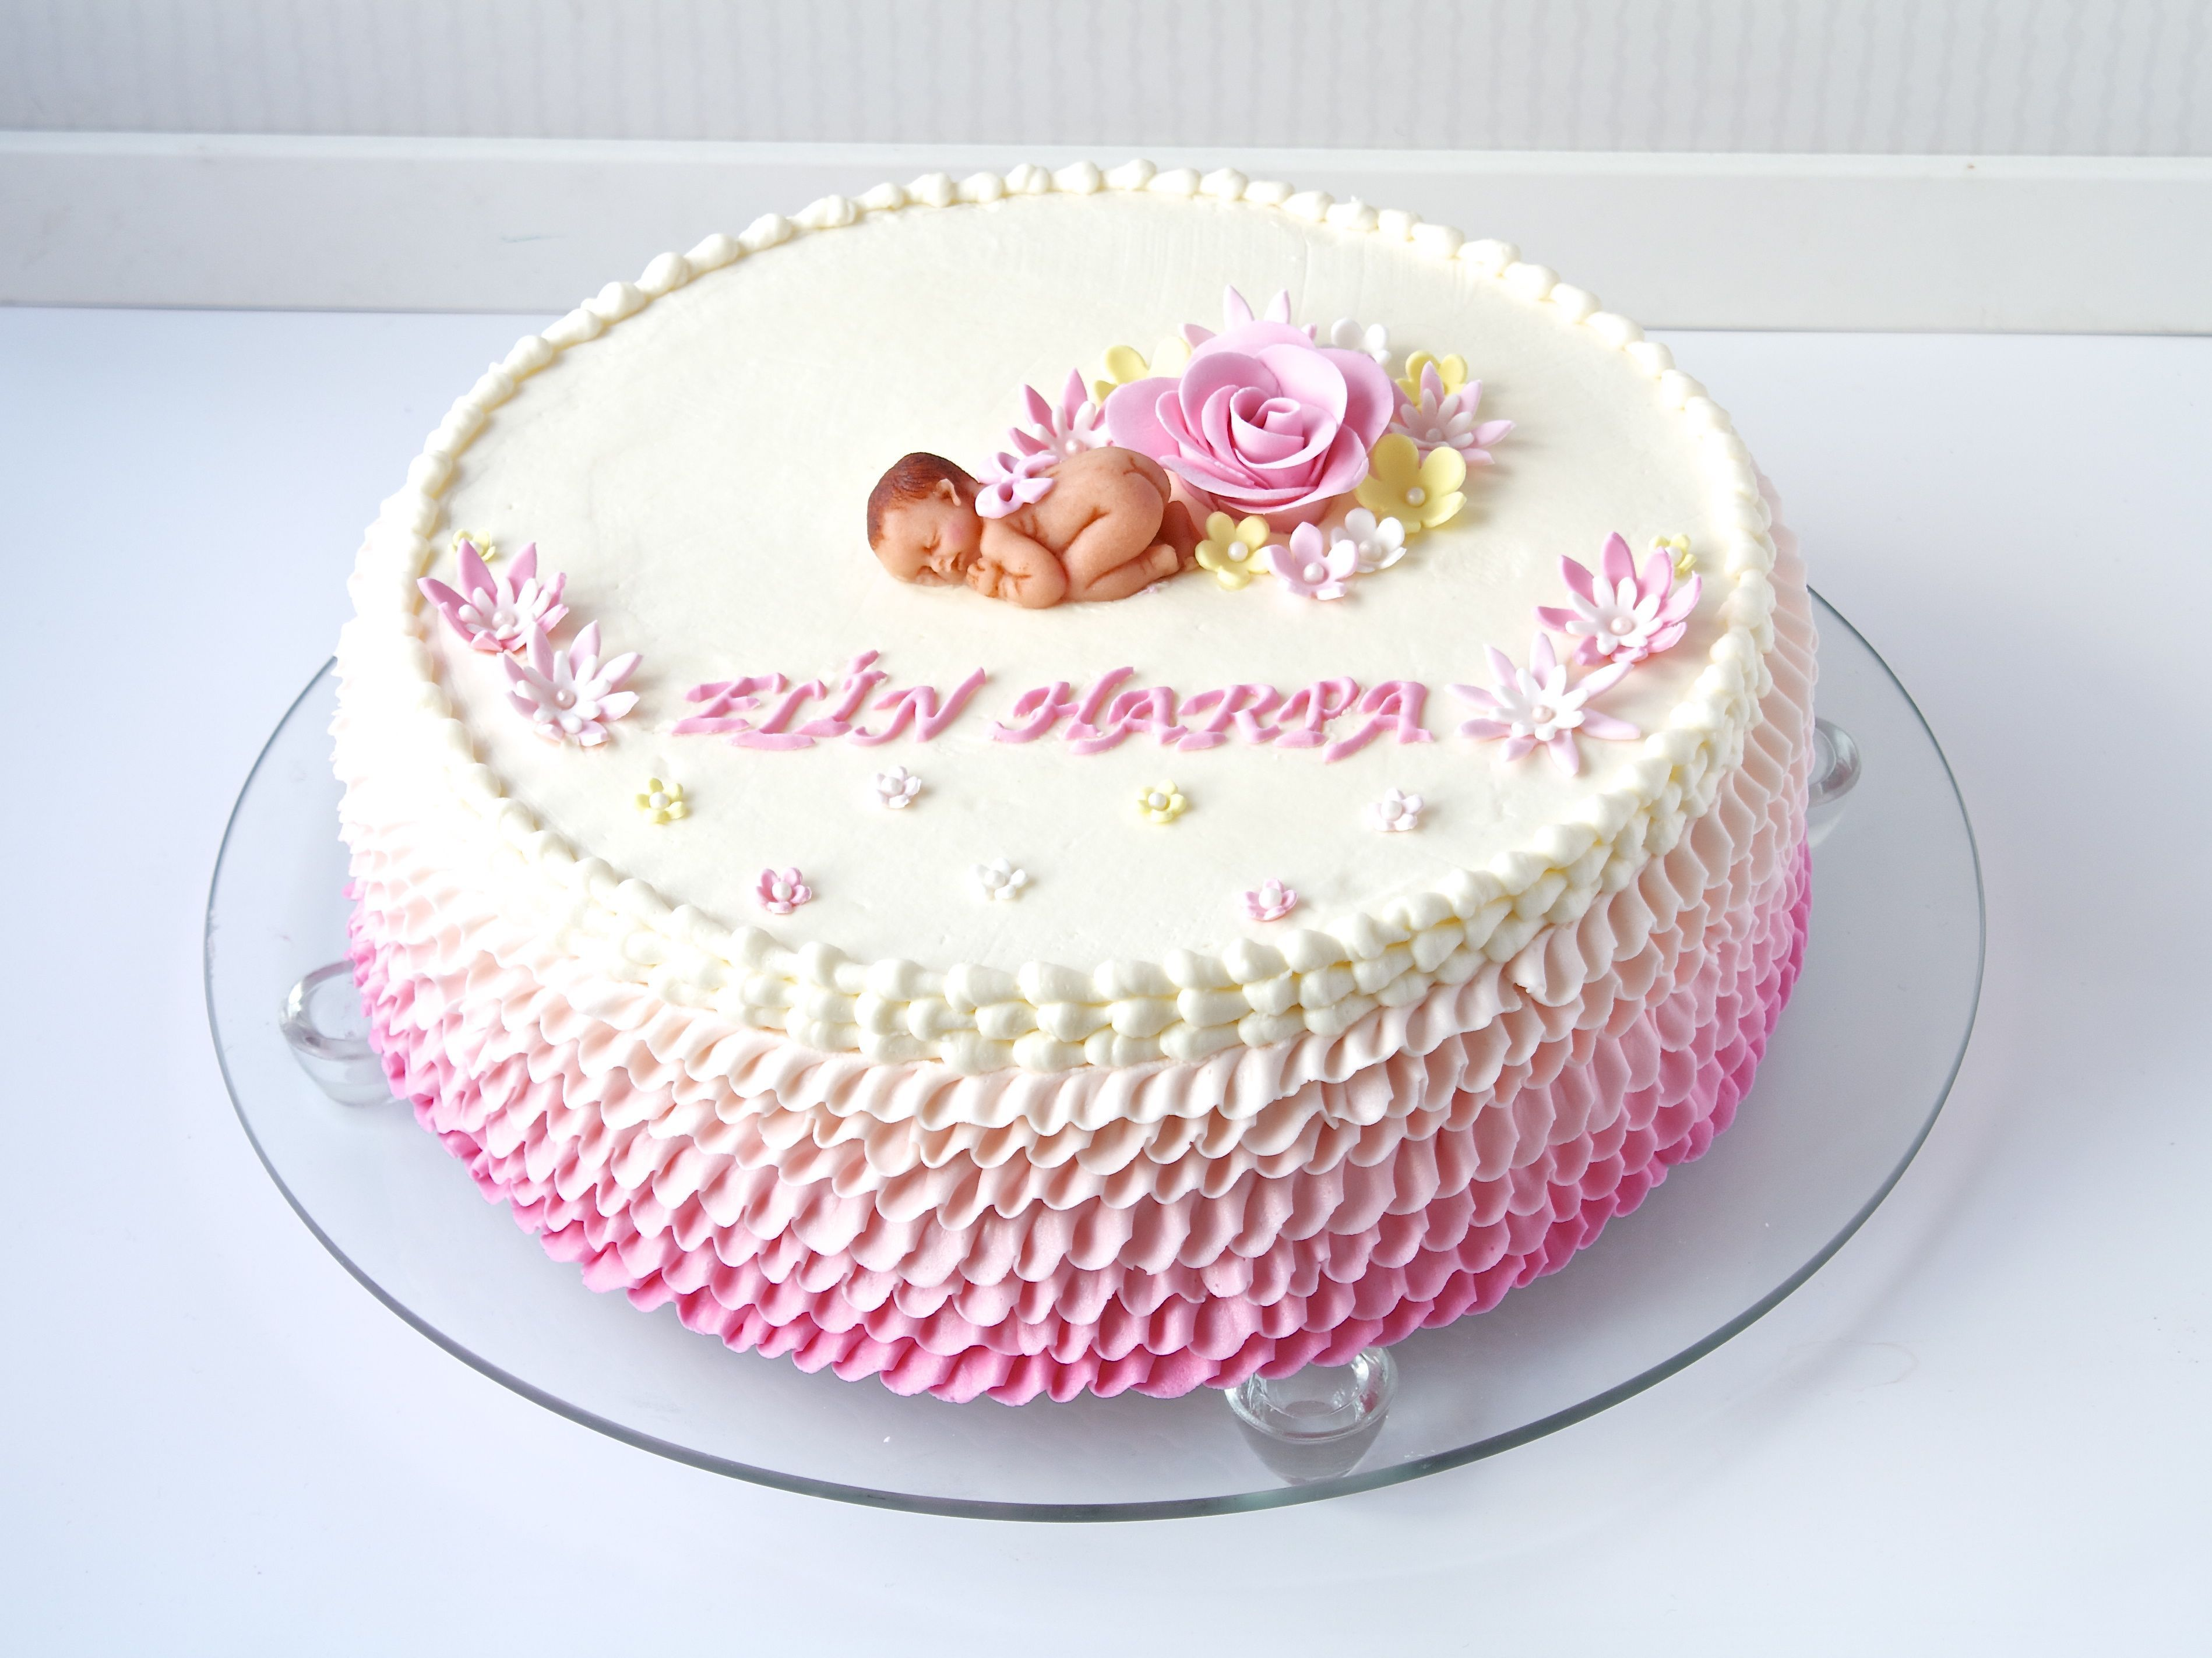 Christening Cake For A Baby Girl All Buttercream Marzipan Baby